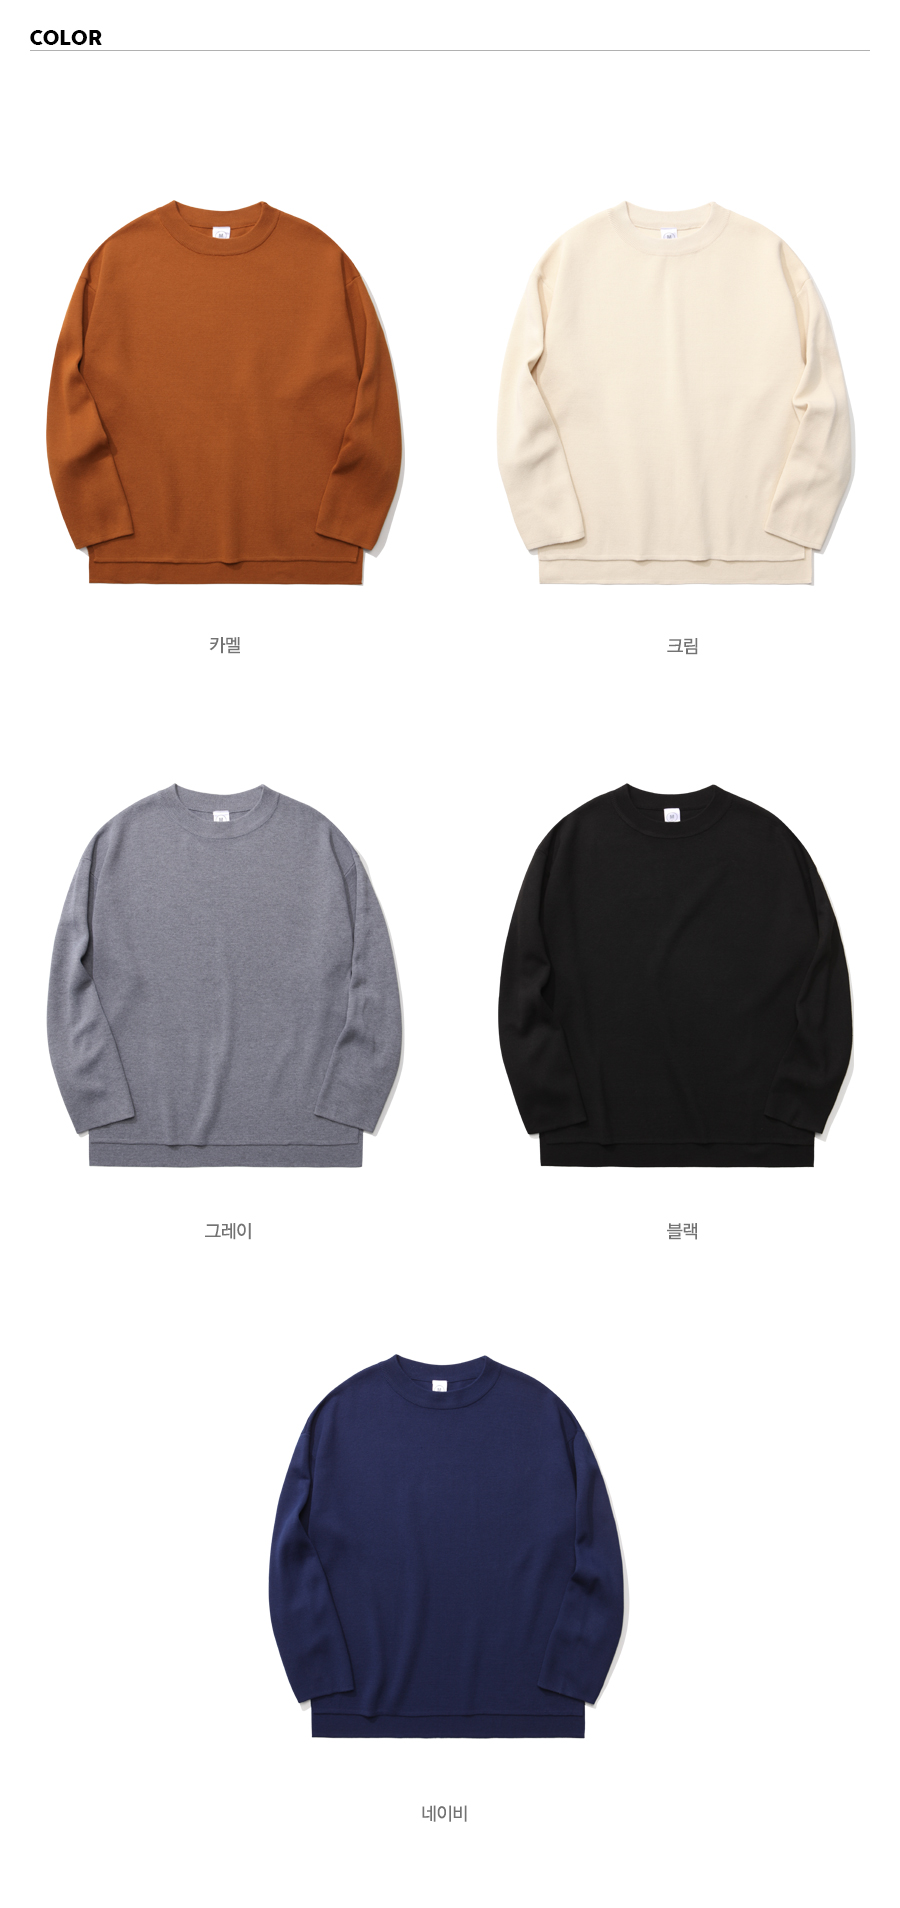 20181001_daily_knit_color_yh.jpg